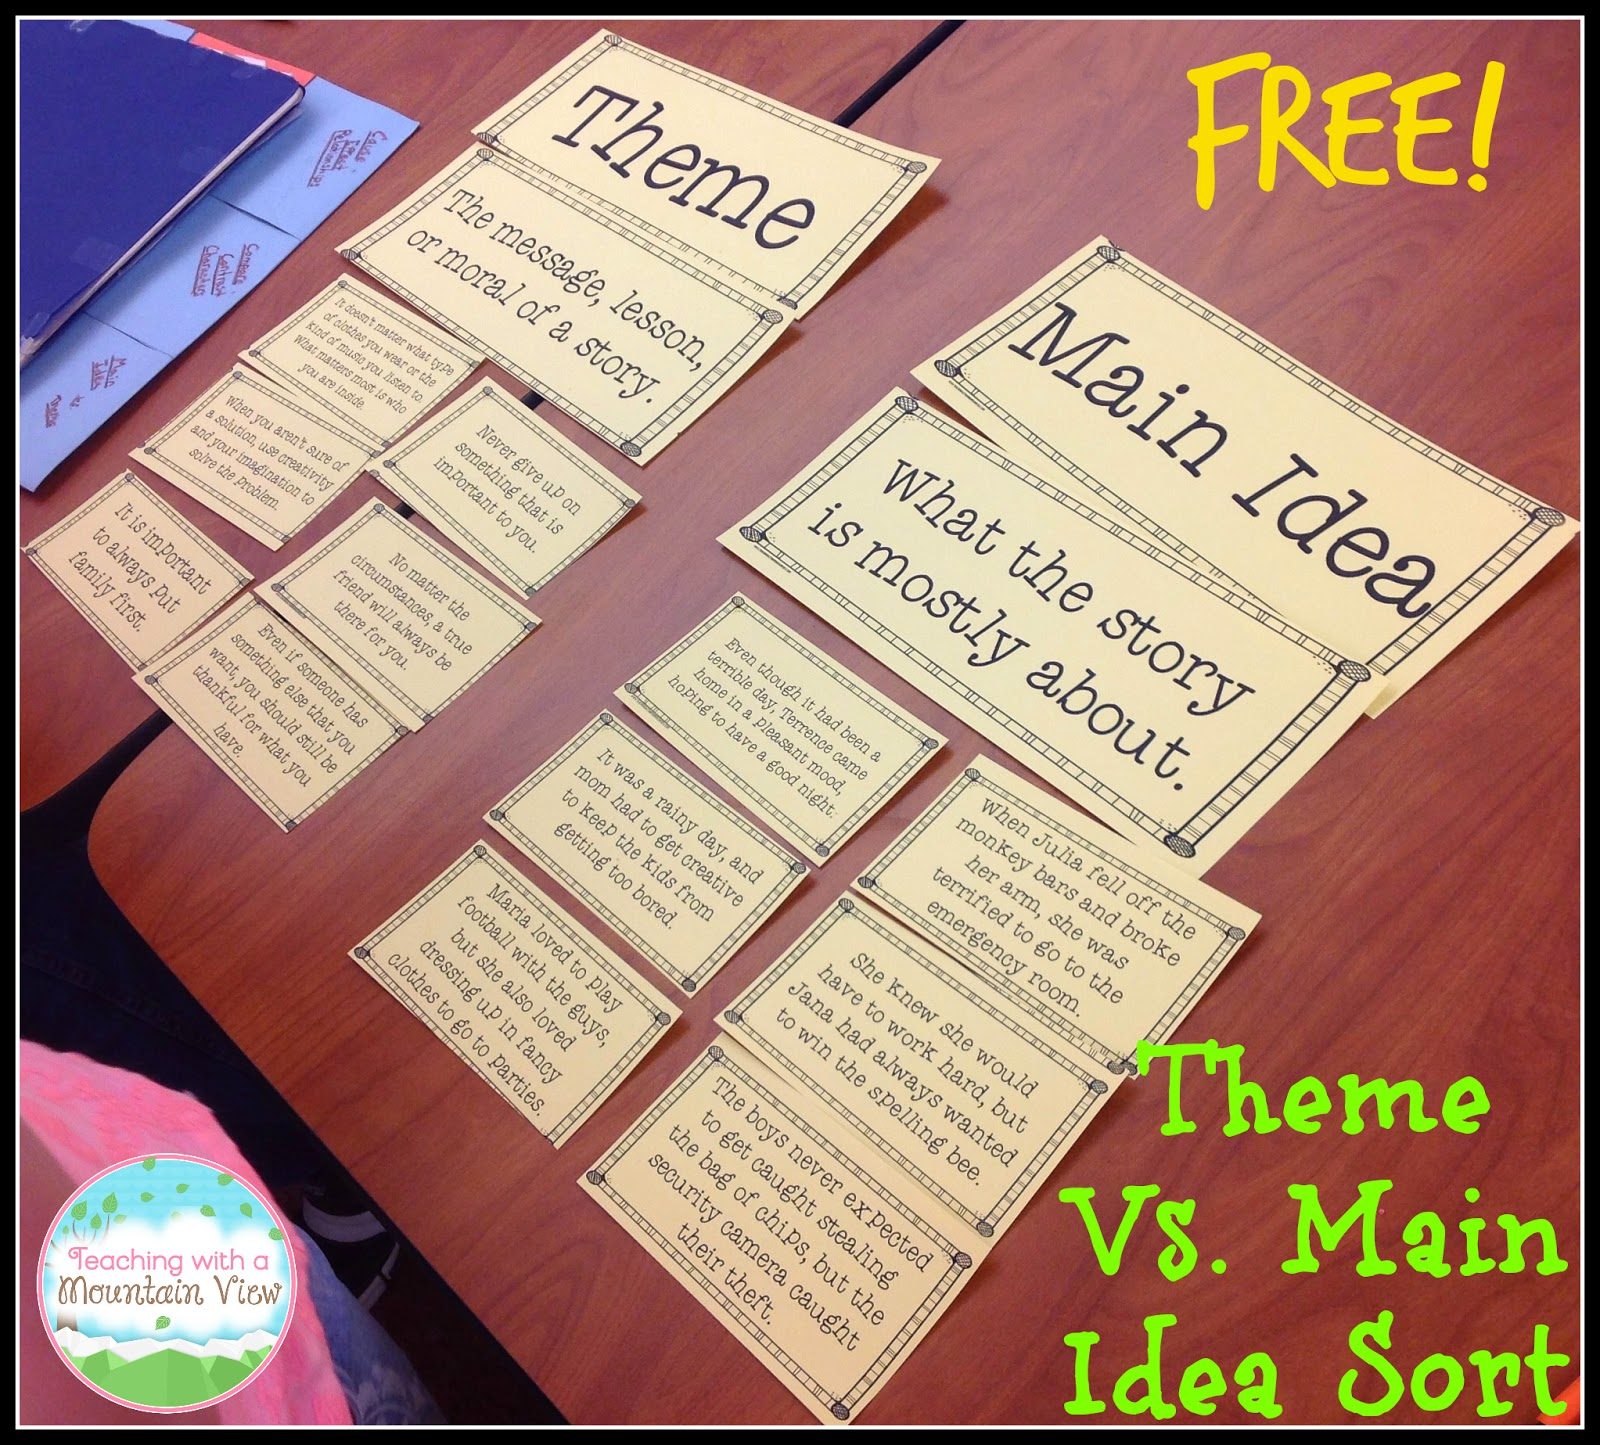 Gmail themes 2014 free download - You Can Download The Main Idea And Theme Sort That I Used For Free At This Link Here